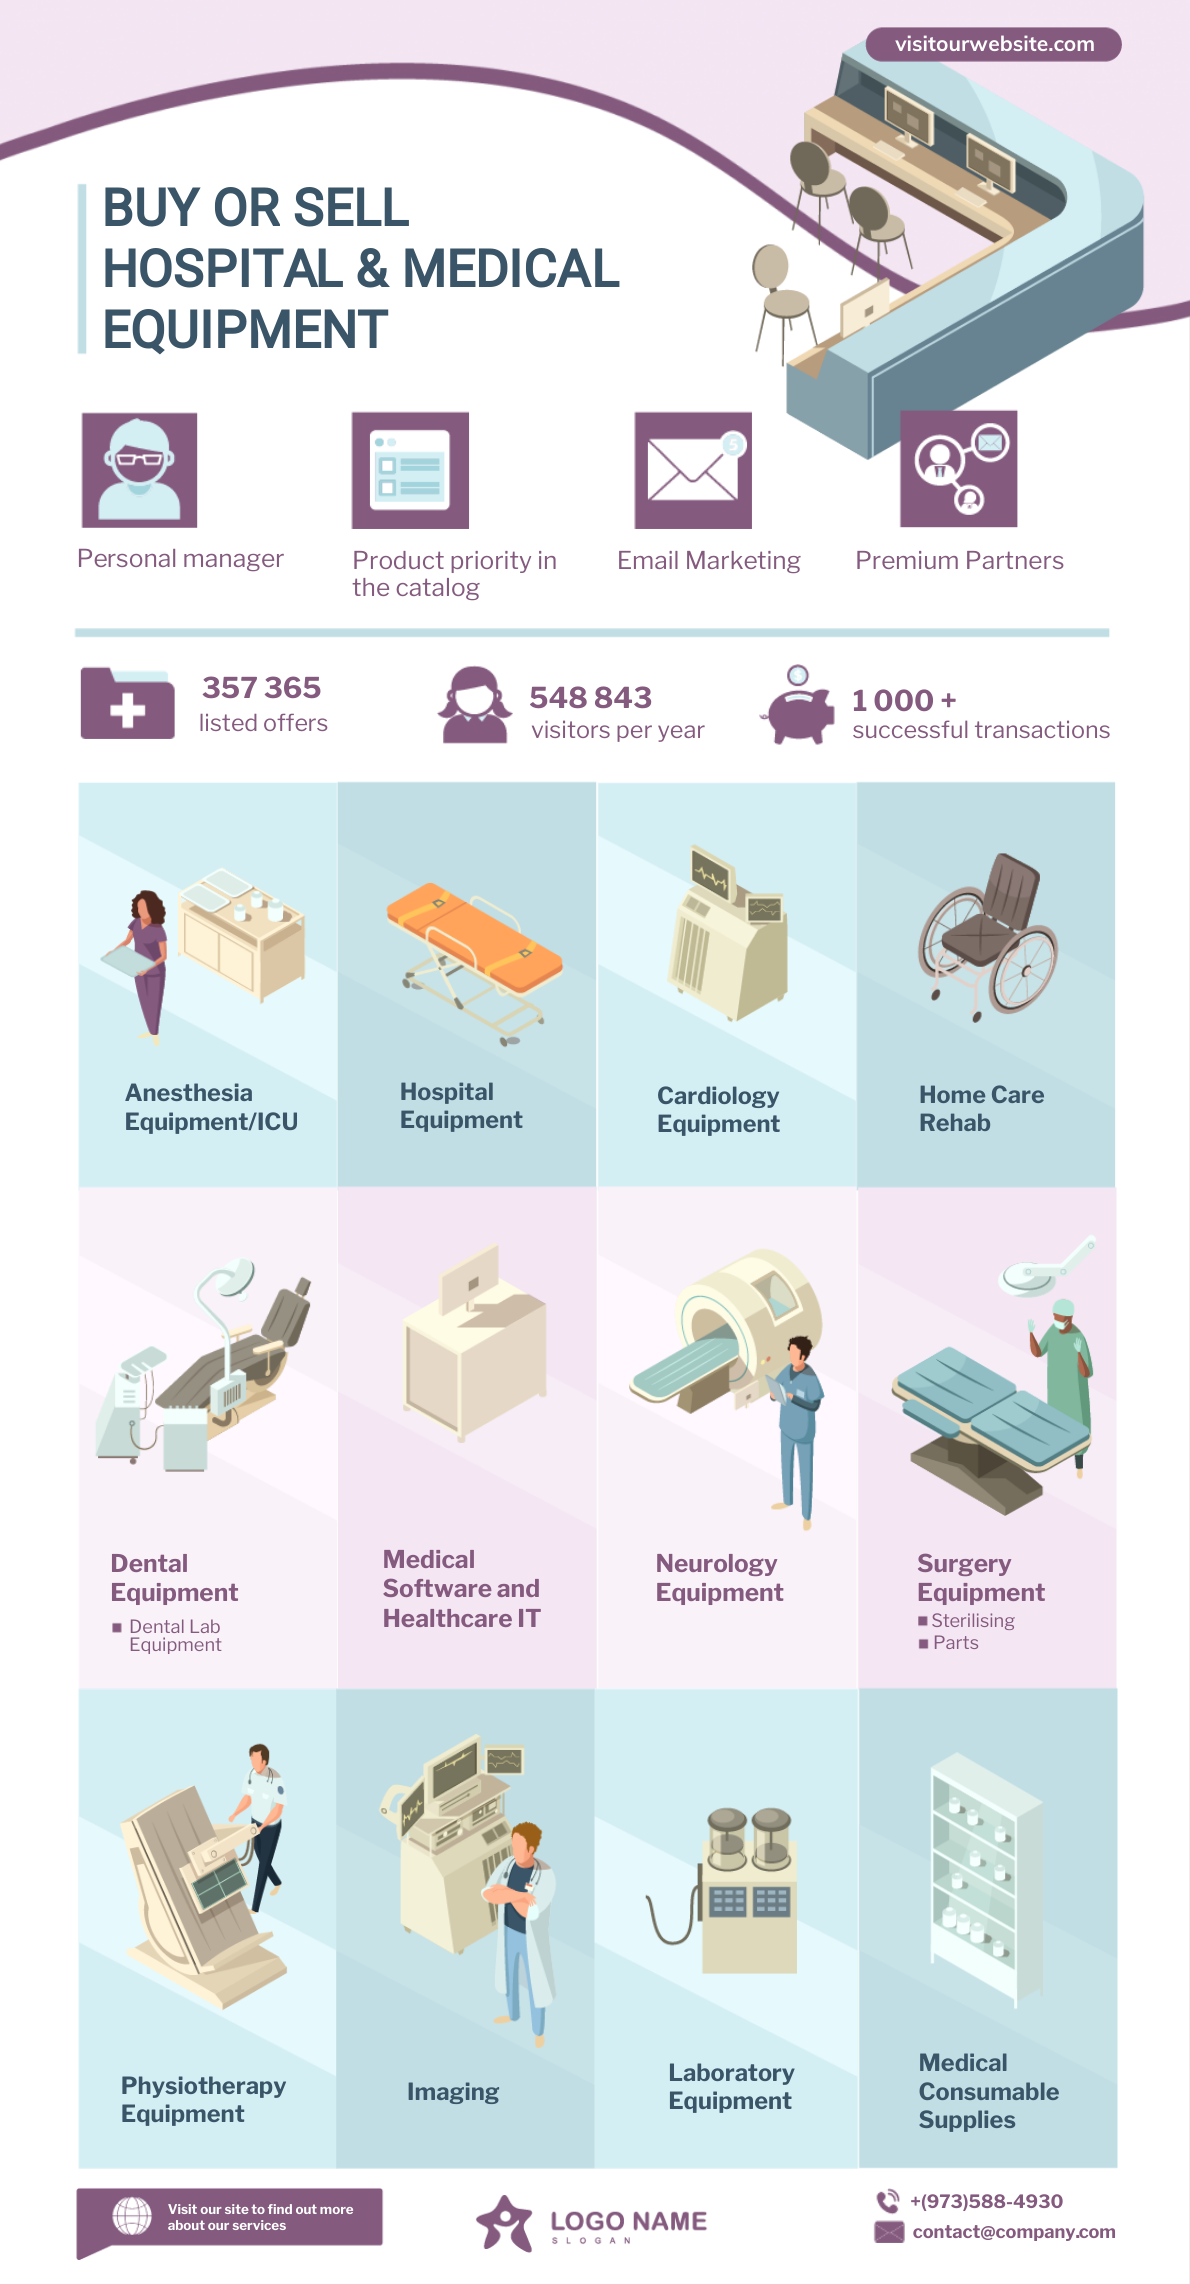 An infographic about buying and selling of medical equipment